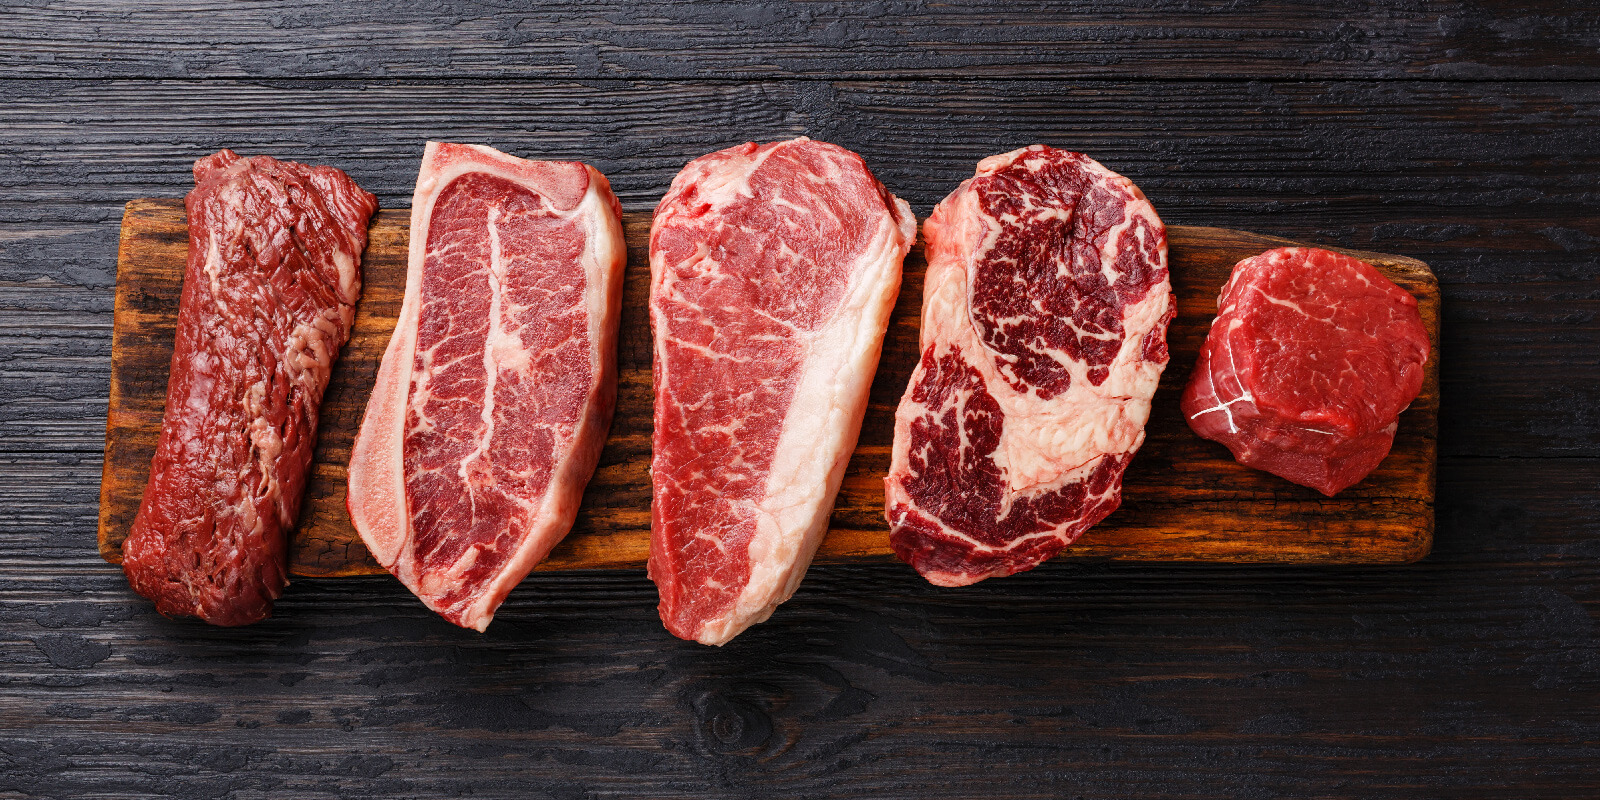 A photo of some meat